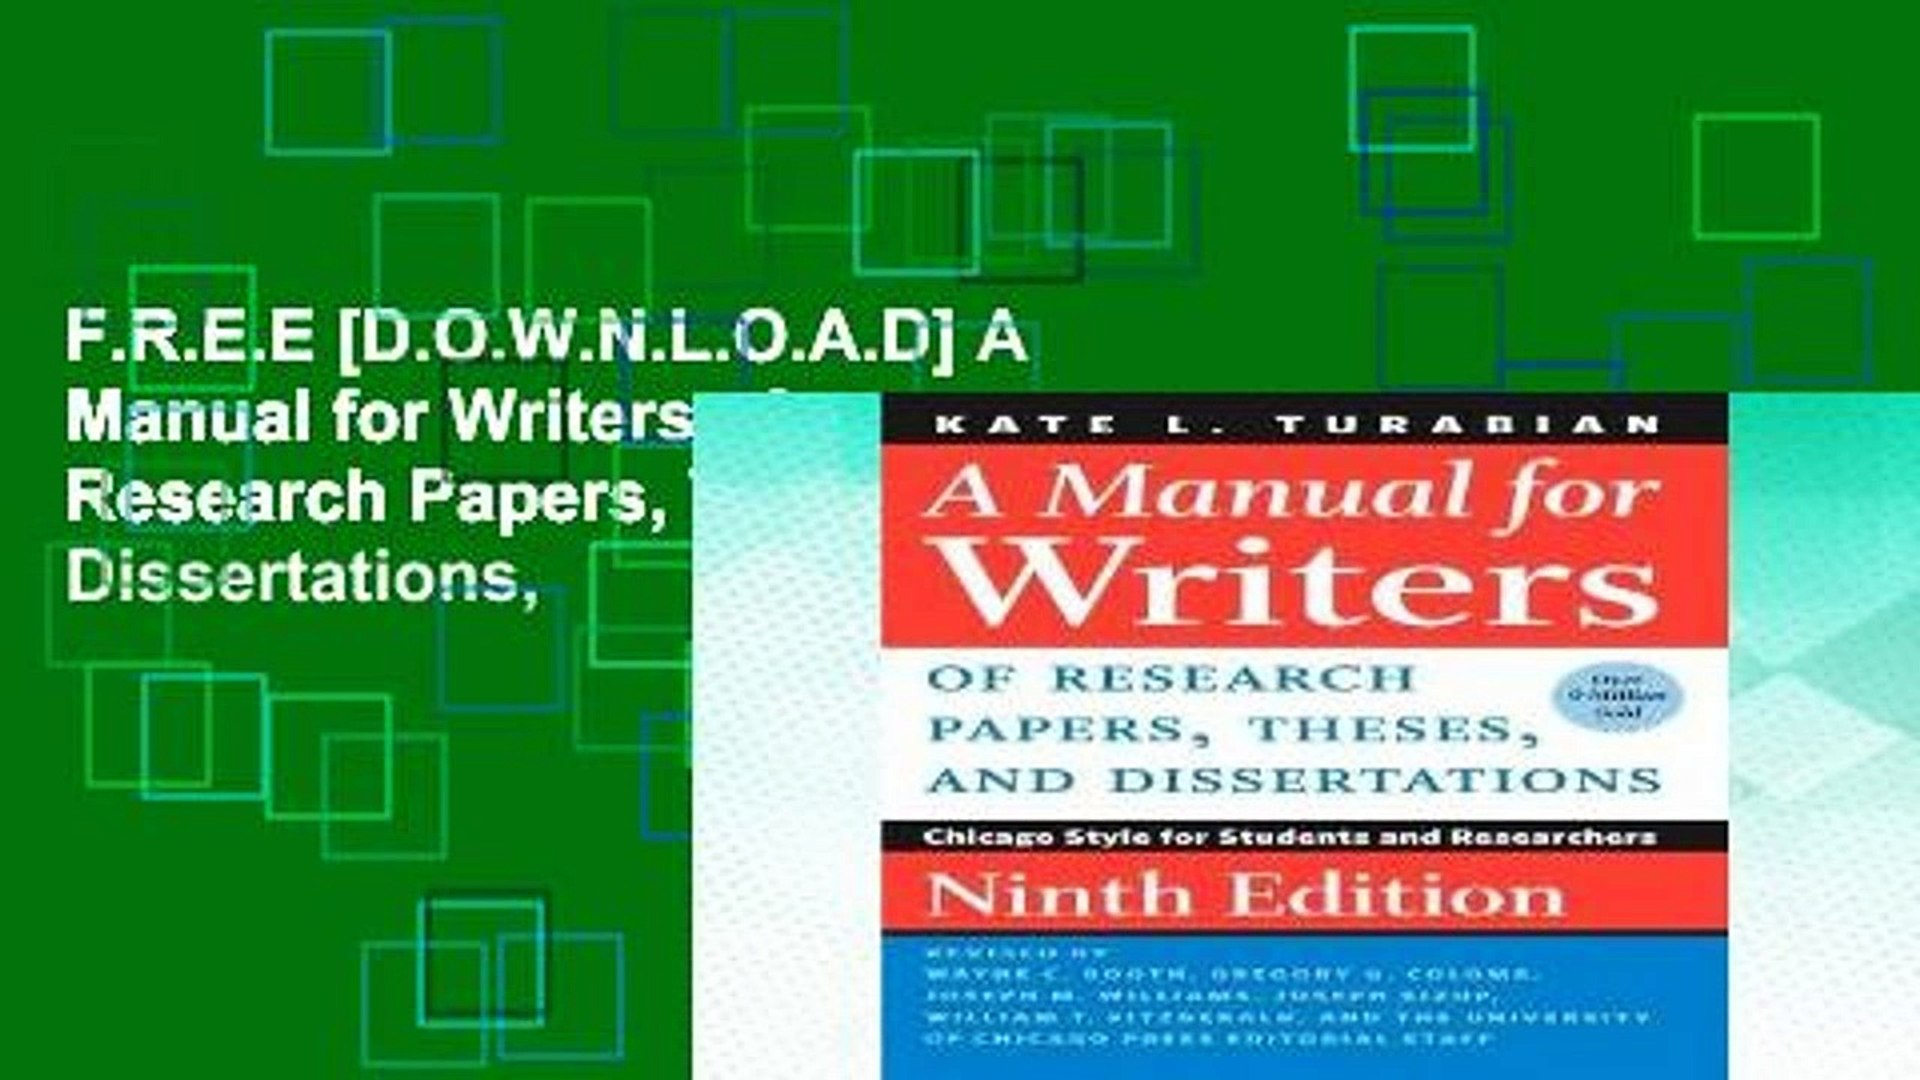 013 X1080 Kcn Research Paper Manual For Writers Of Papers Theses And Magnificent Dissertations A 8th Ed Pdf Full